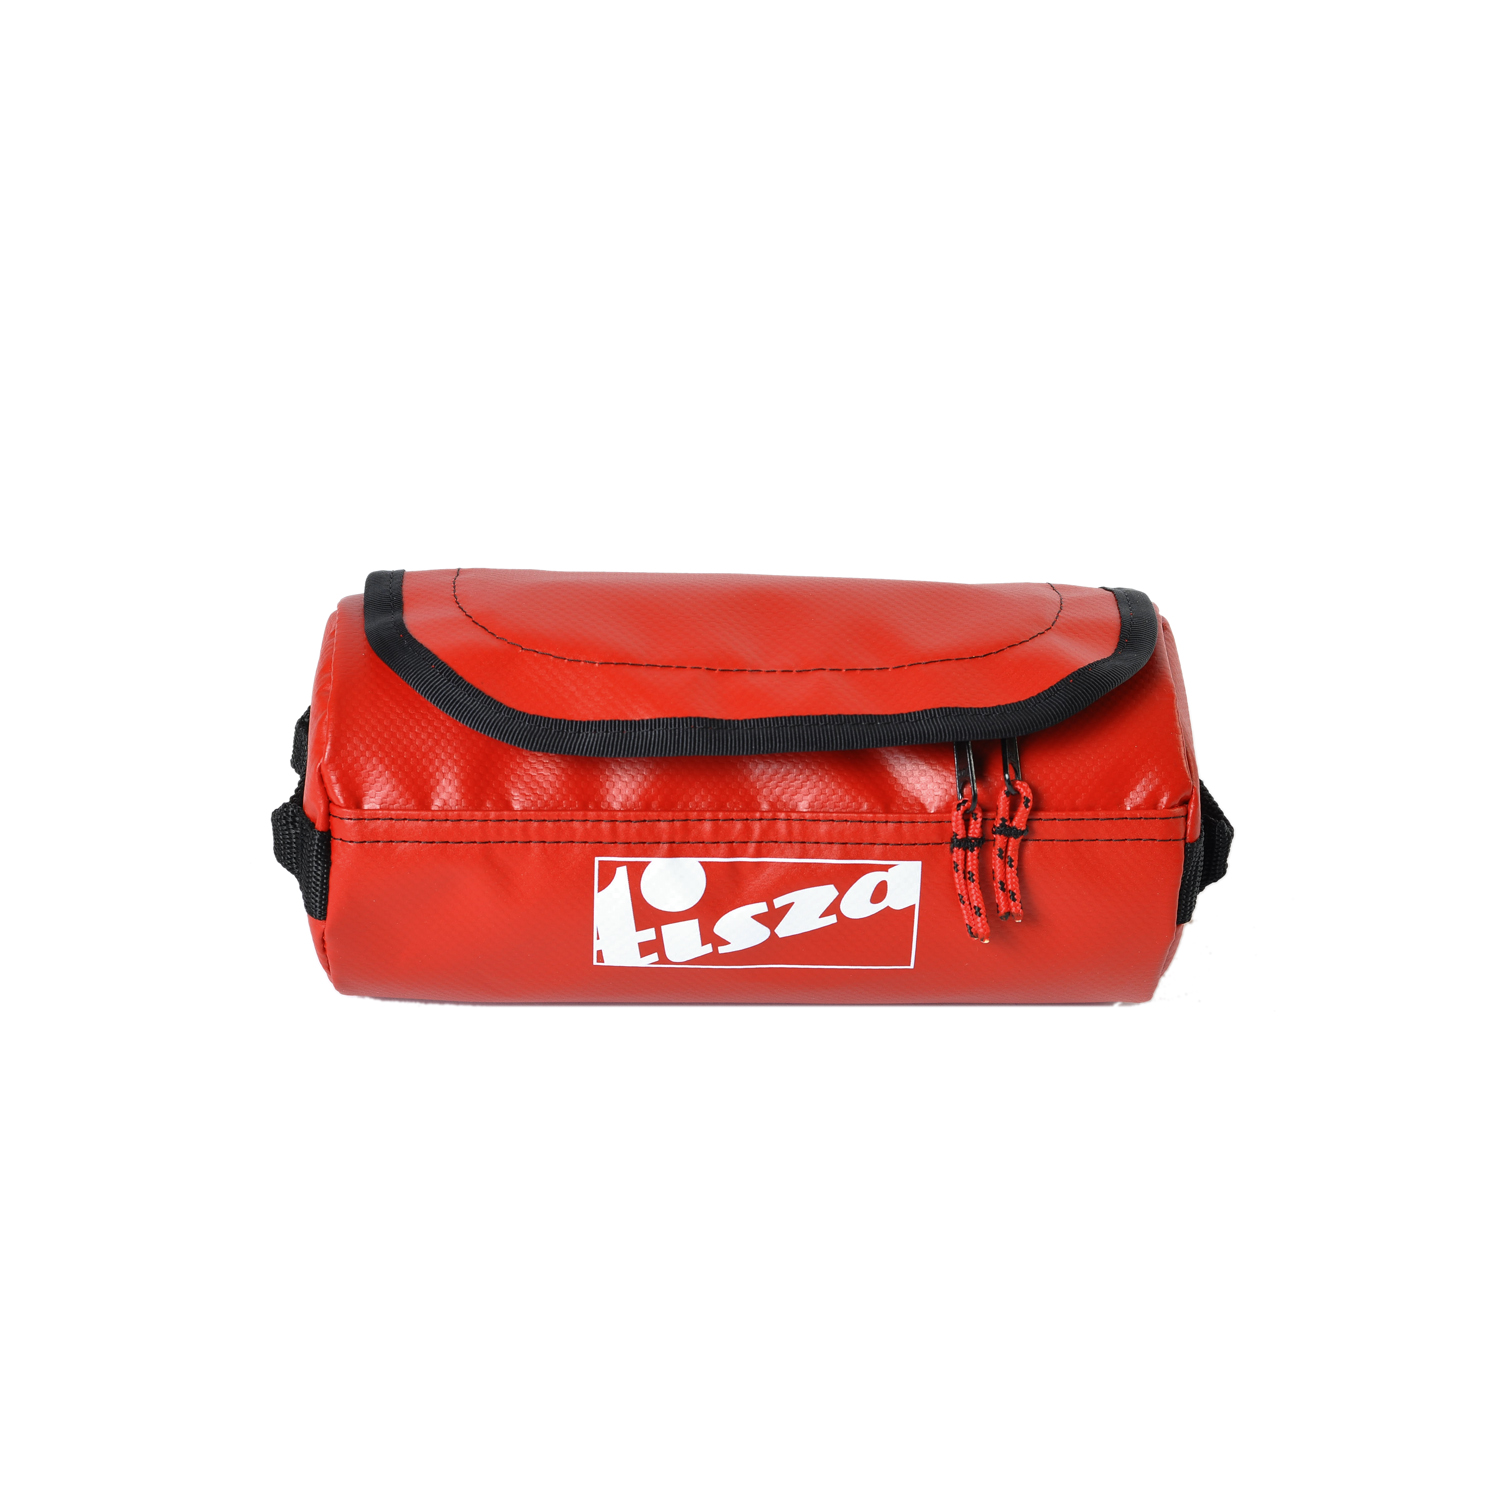 Tisza shoes - Toiletry bag - Red